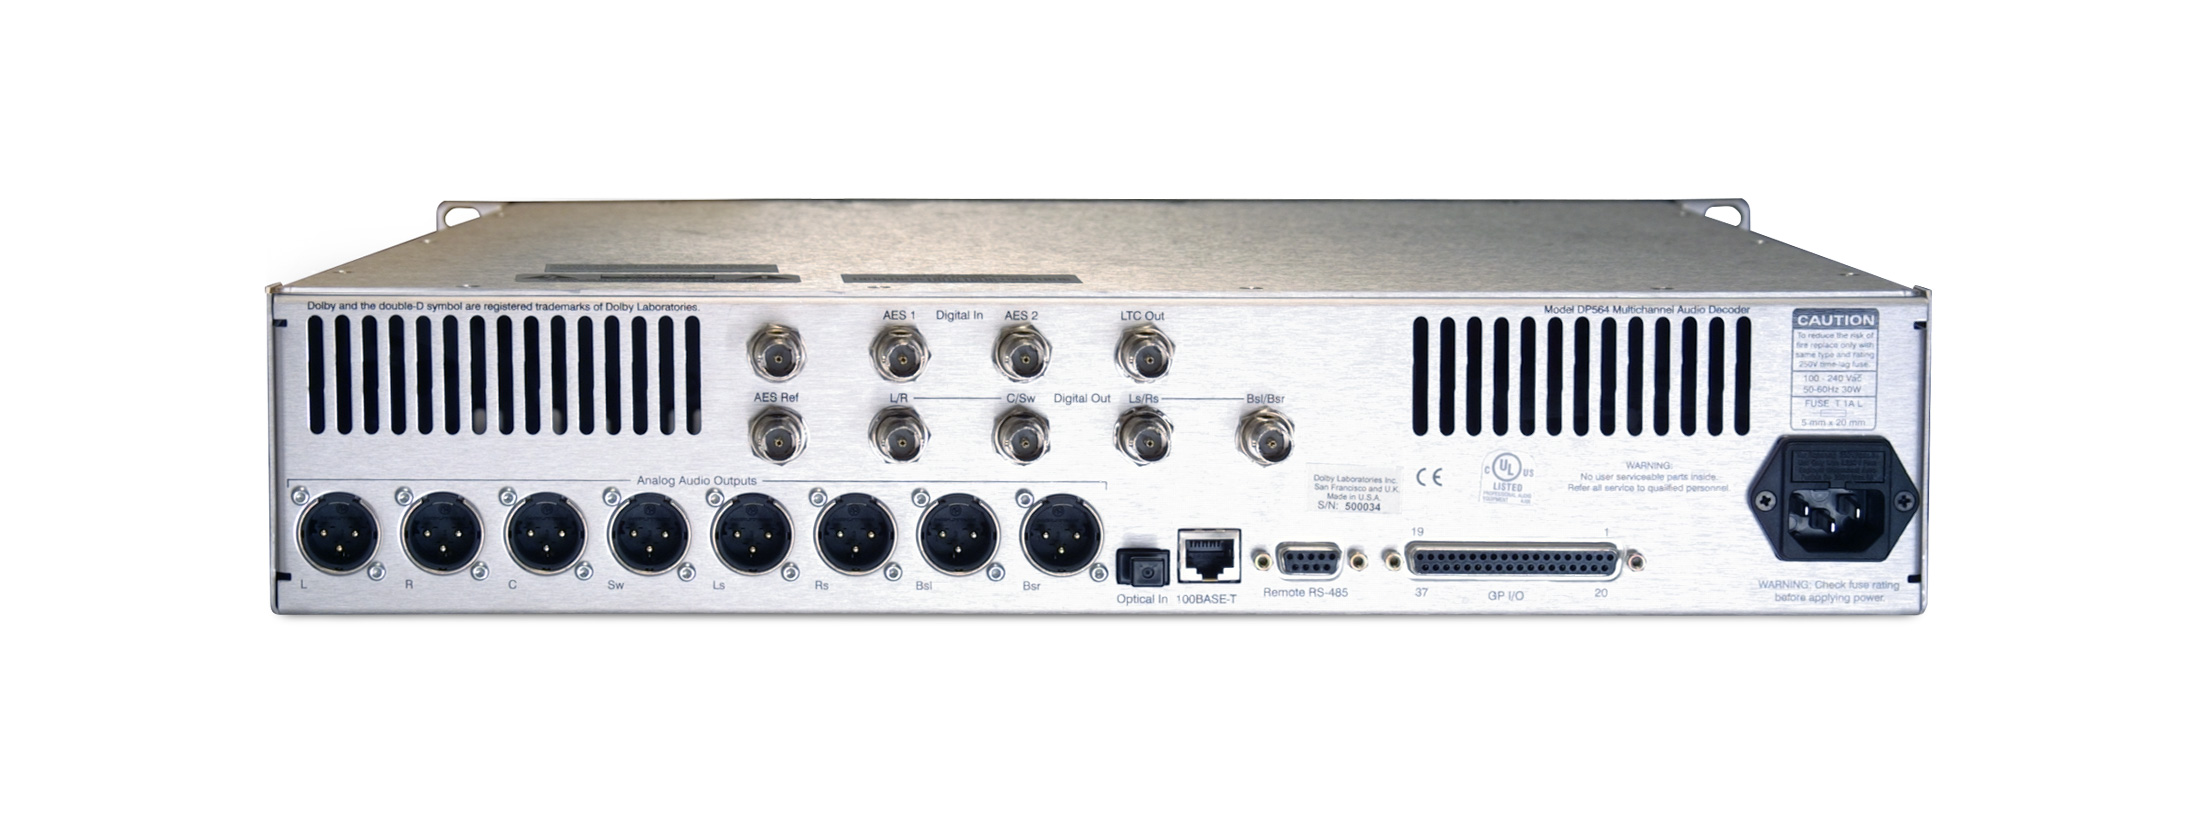 multichannel-audio-decoder-DP564-product-preview-back